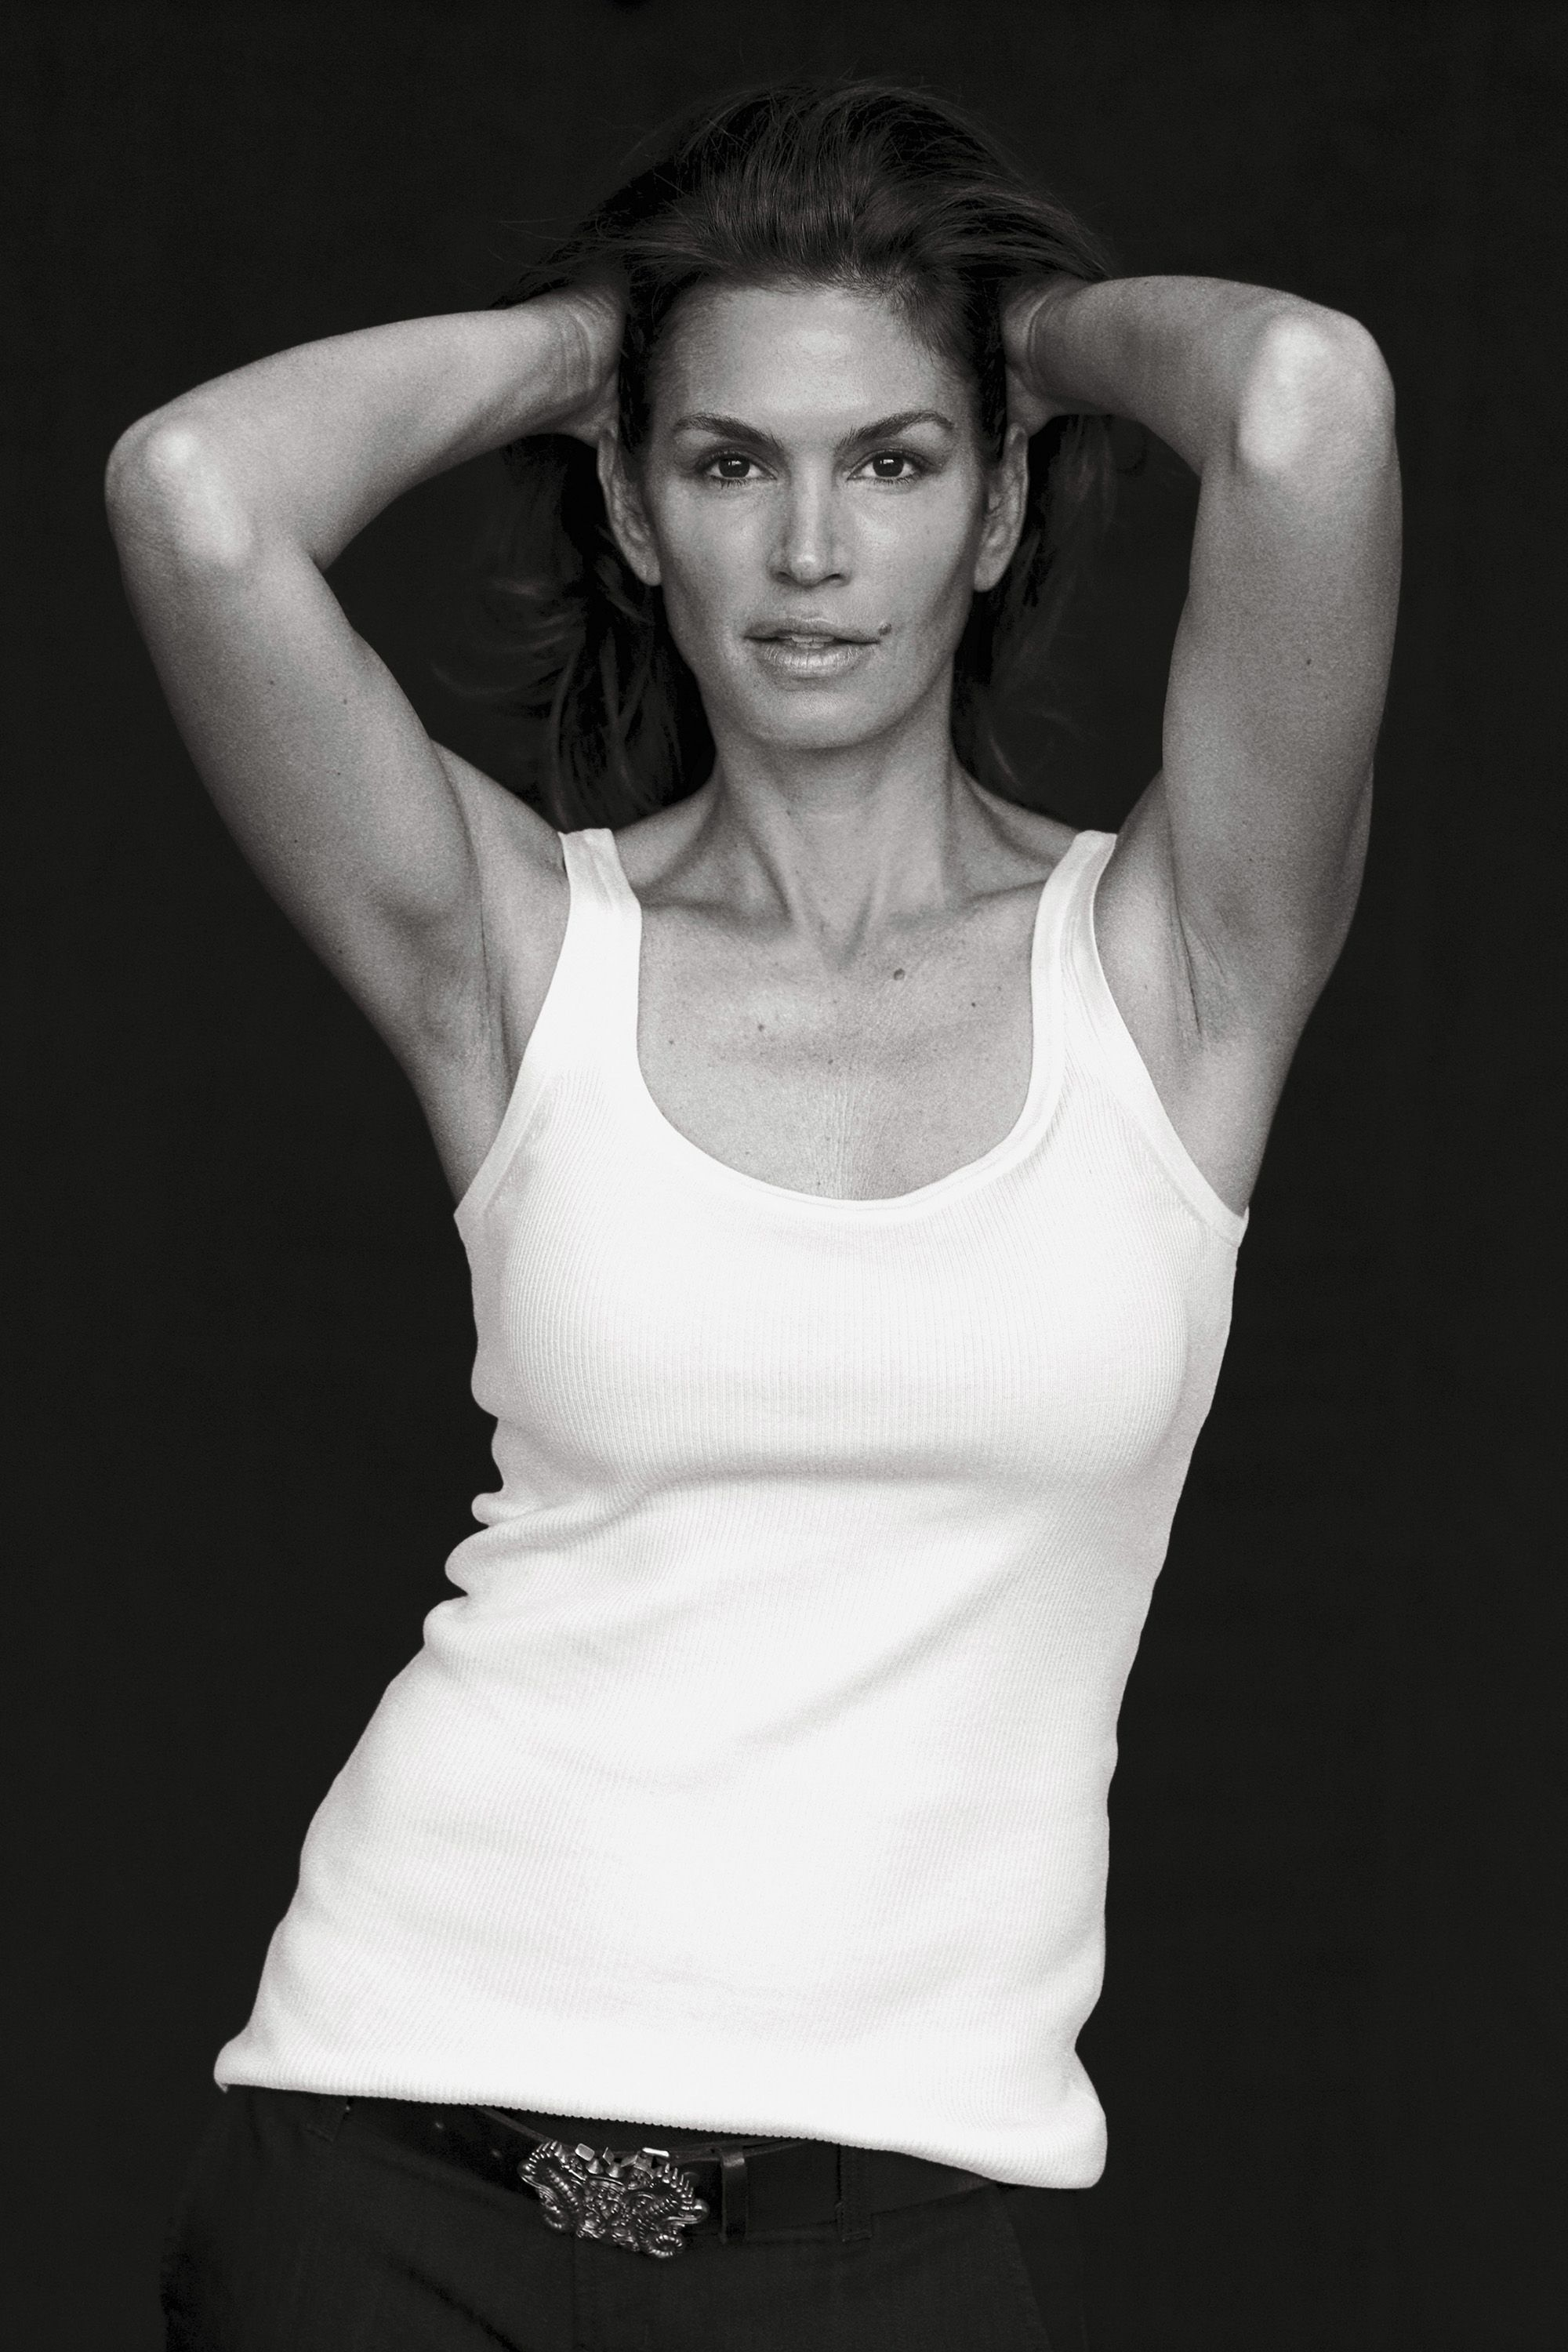 """<p><em>Photographed for the September 2009 issue by Peter Lindbergh, styled by Brana Wolf.</em></p><p><em></em>Cindy Crawford was one of the original supermodels—that handful of young women who booked nearly every cover, editorial, and major campaign in the late 1980s and early '90s. """"We worked almost every day, and the days we weren't working we were on a plane,"""" Cindy remembers. """"If I could go back, I'd try to drink it all in more."""" She says the apex of that period was her now famous strut down the Versace catwalk in 1991, when she walked arm in arm with Naomi Campbell, Linda Evangelista, and Christy Turlington to George Michael's hit """"Freedom '90."""" (They'd all appeared in the song's video.) """"That was the moment,"""" she recalls. """"It felt like the stars were in alignment.""""</p>"""